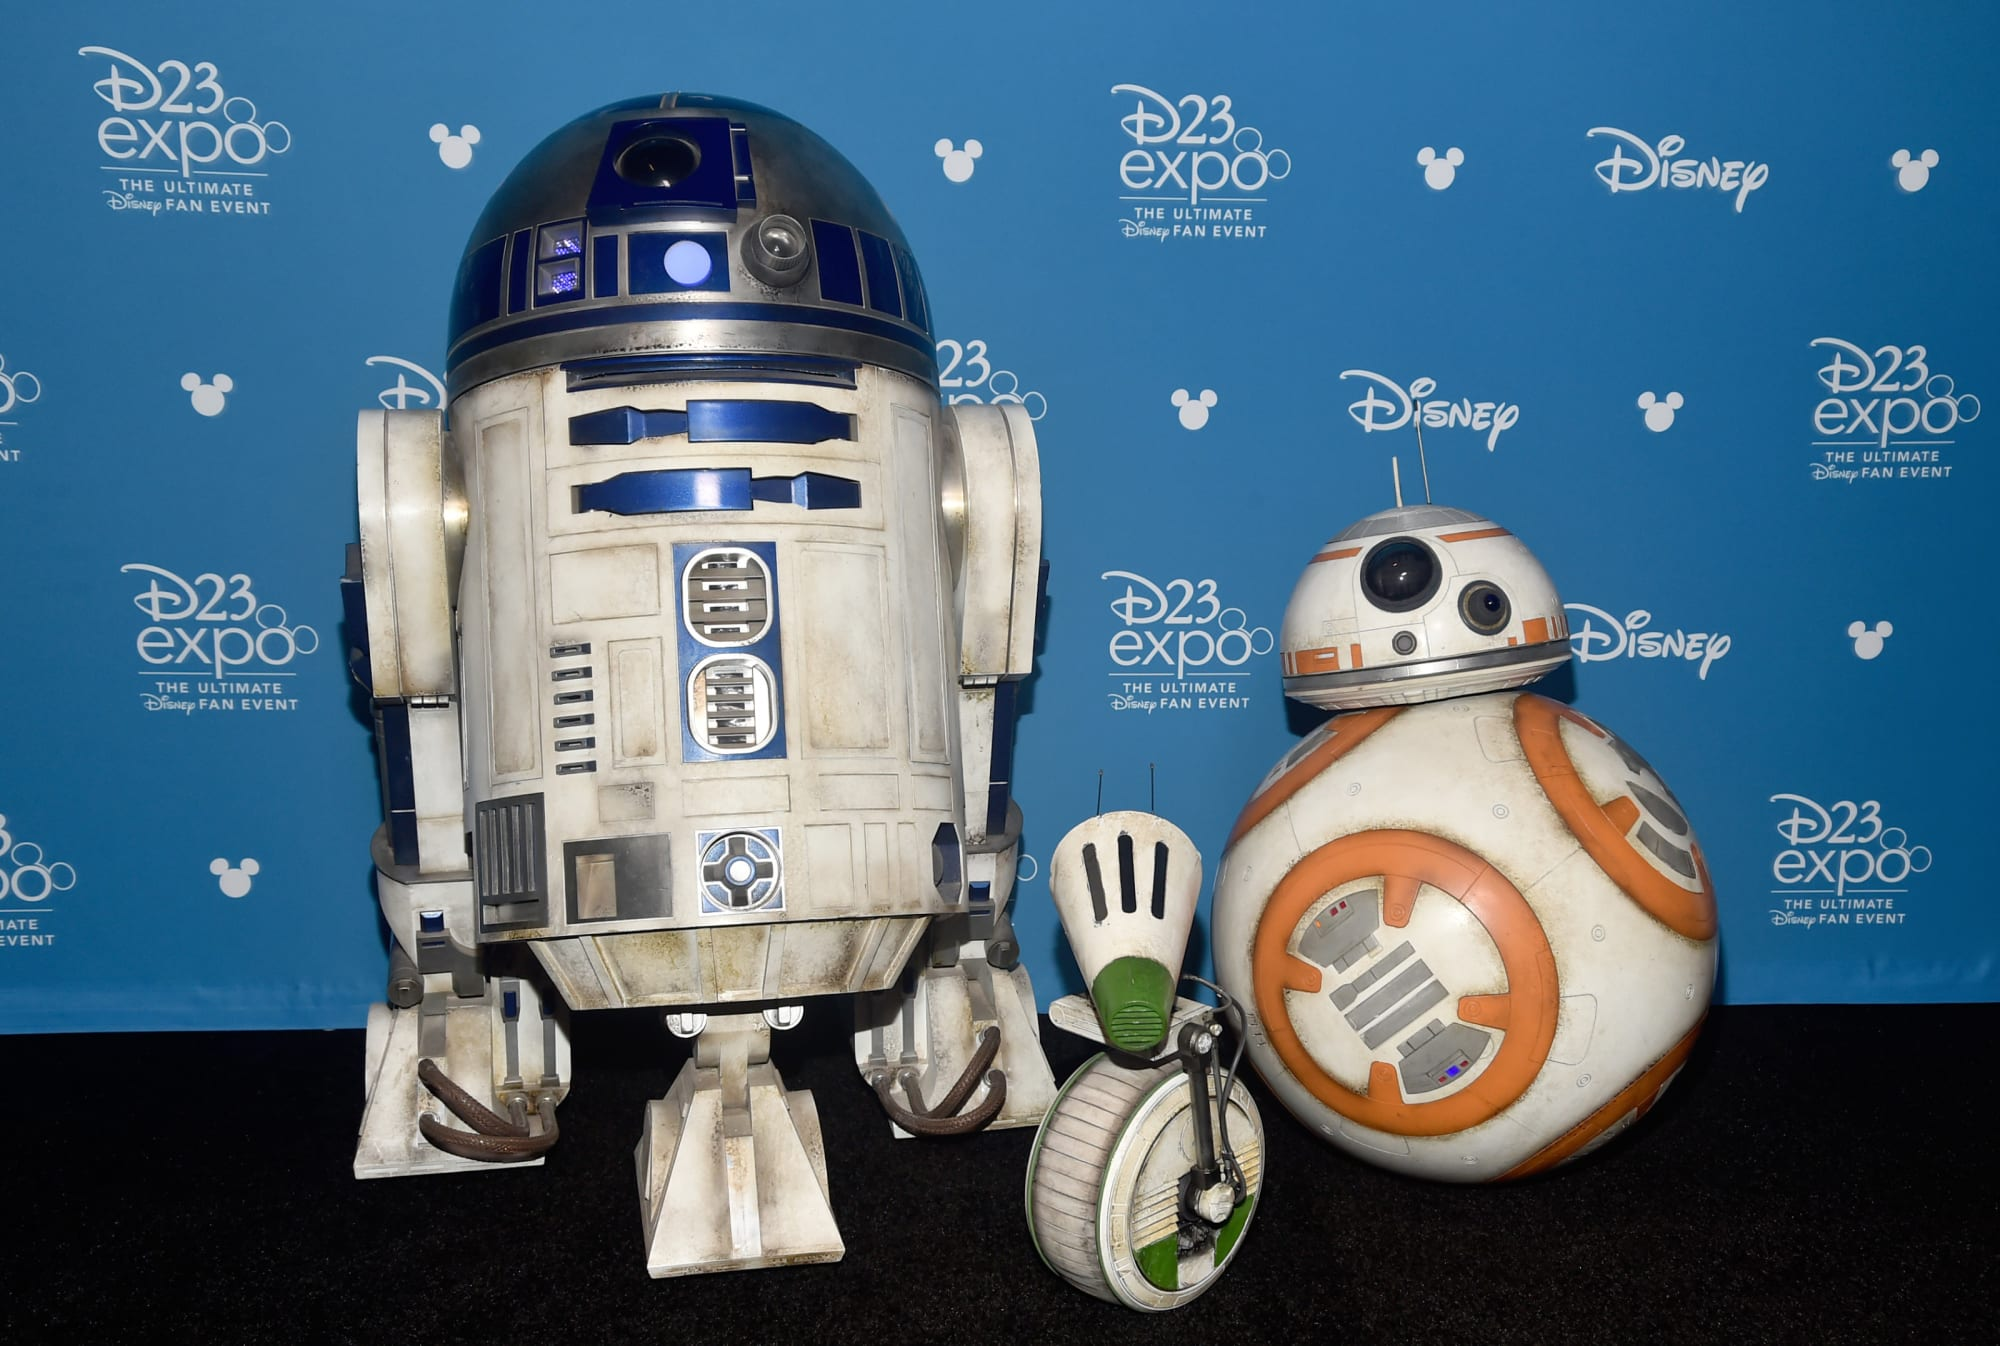 Will the D23 Expo delay to 2022 affect any Star Wars announcements?